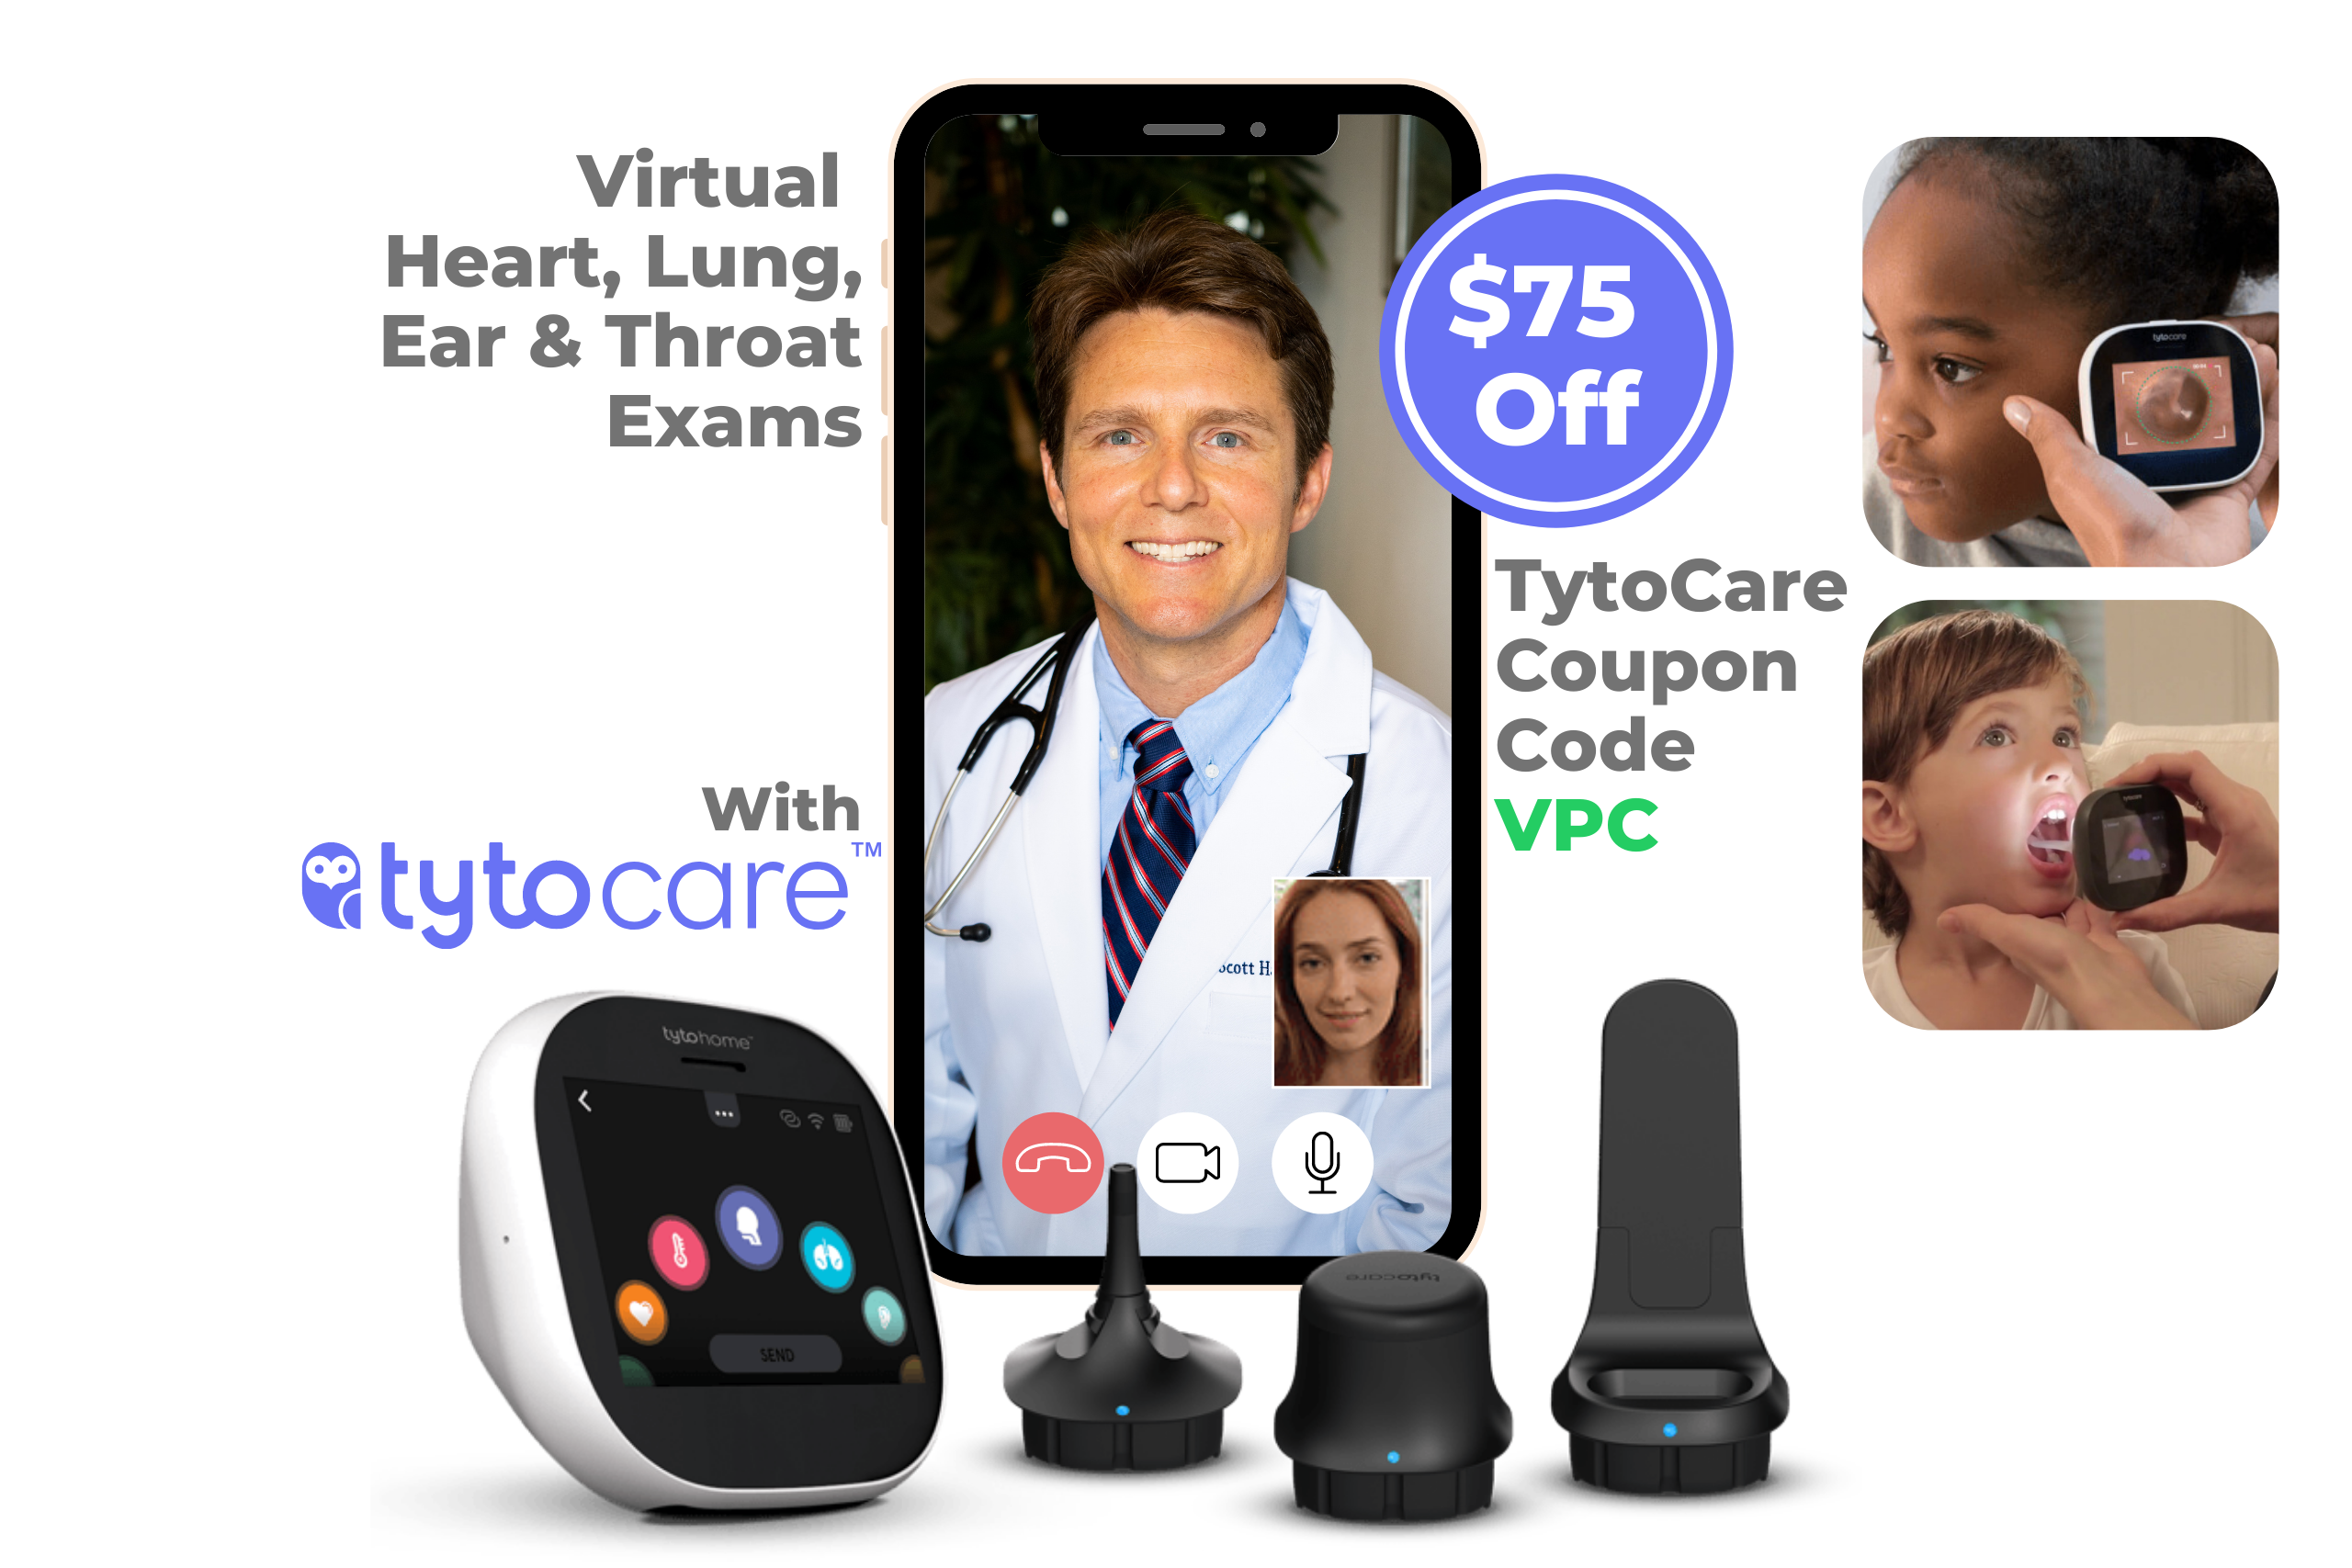 Tytocare device for telemedicine exam shown next to a mobile phone with Dr Scott Harrington a vegan doctor from vegan primary care showing a telemedicine visit with heart, lung, ear and throat exams performed at home and a coupon code for a discount on Tytocare